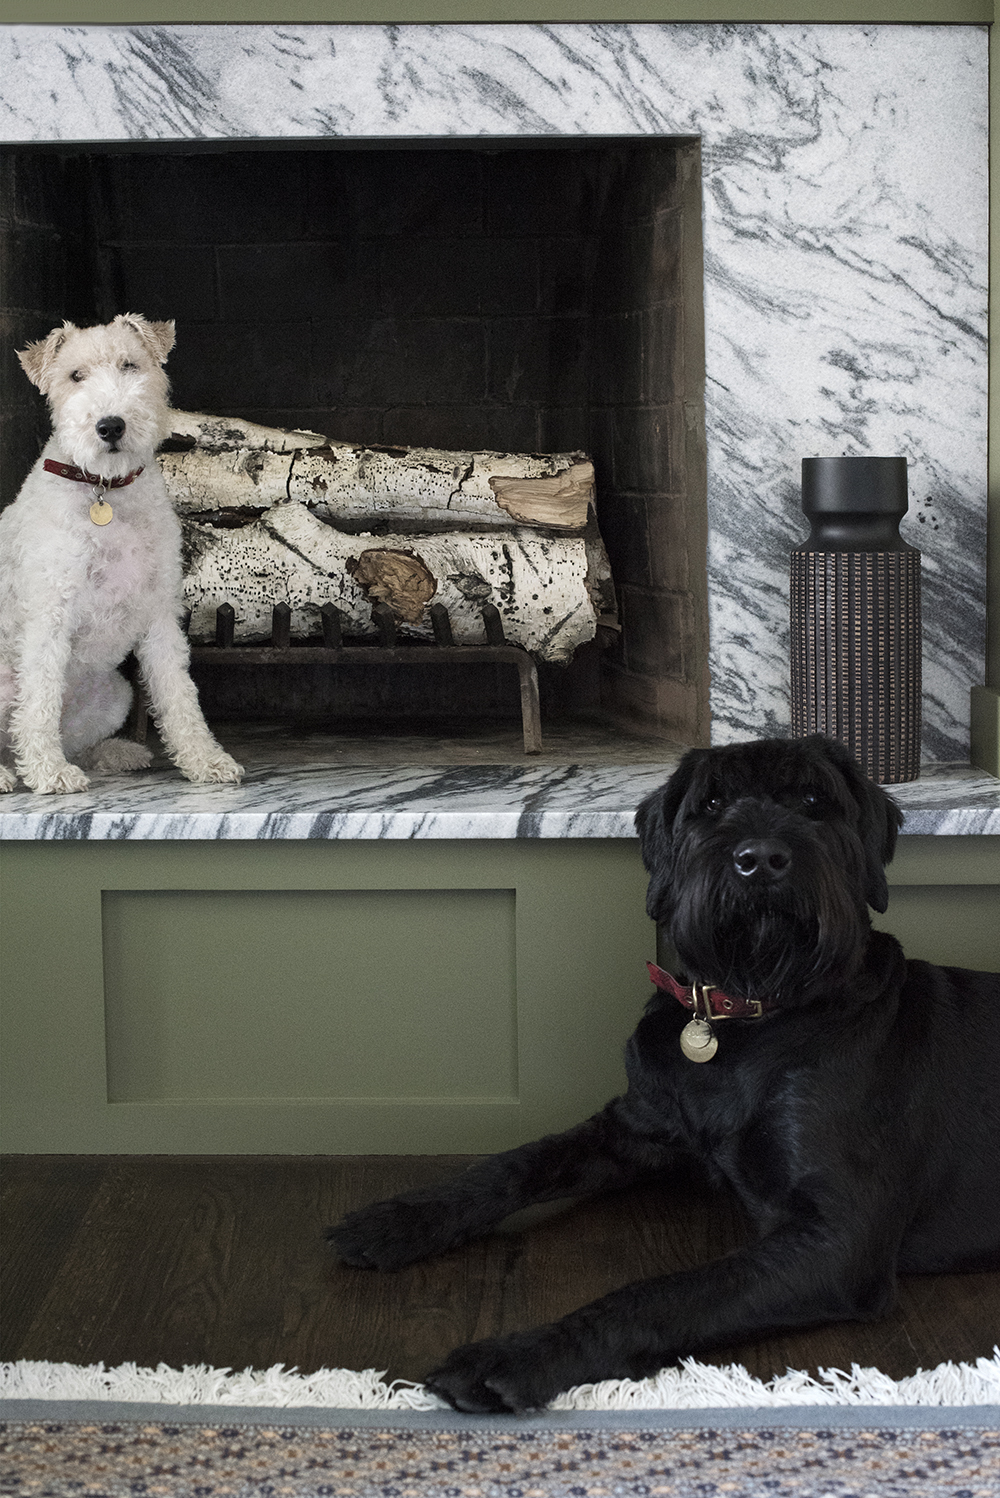 Dogs in front of fireplace